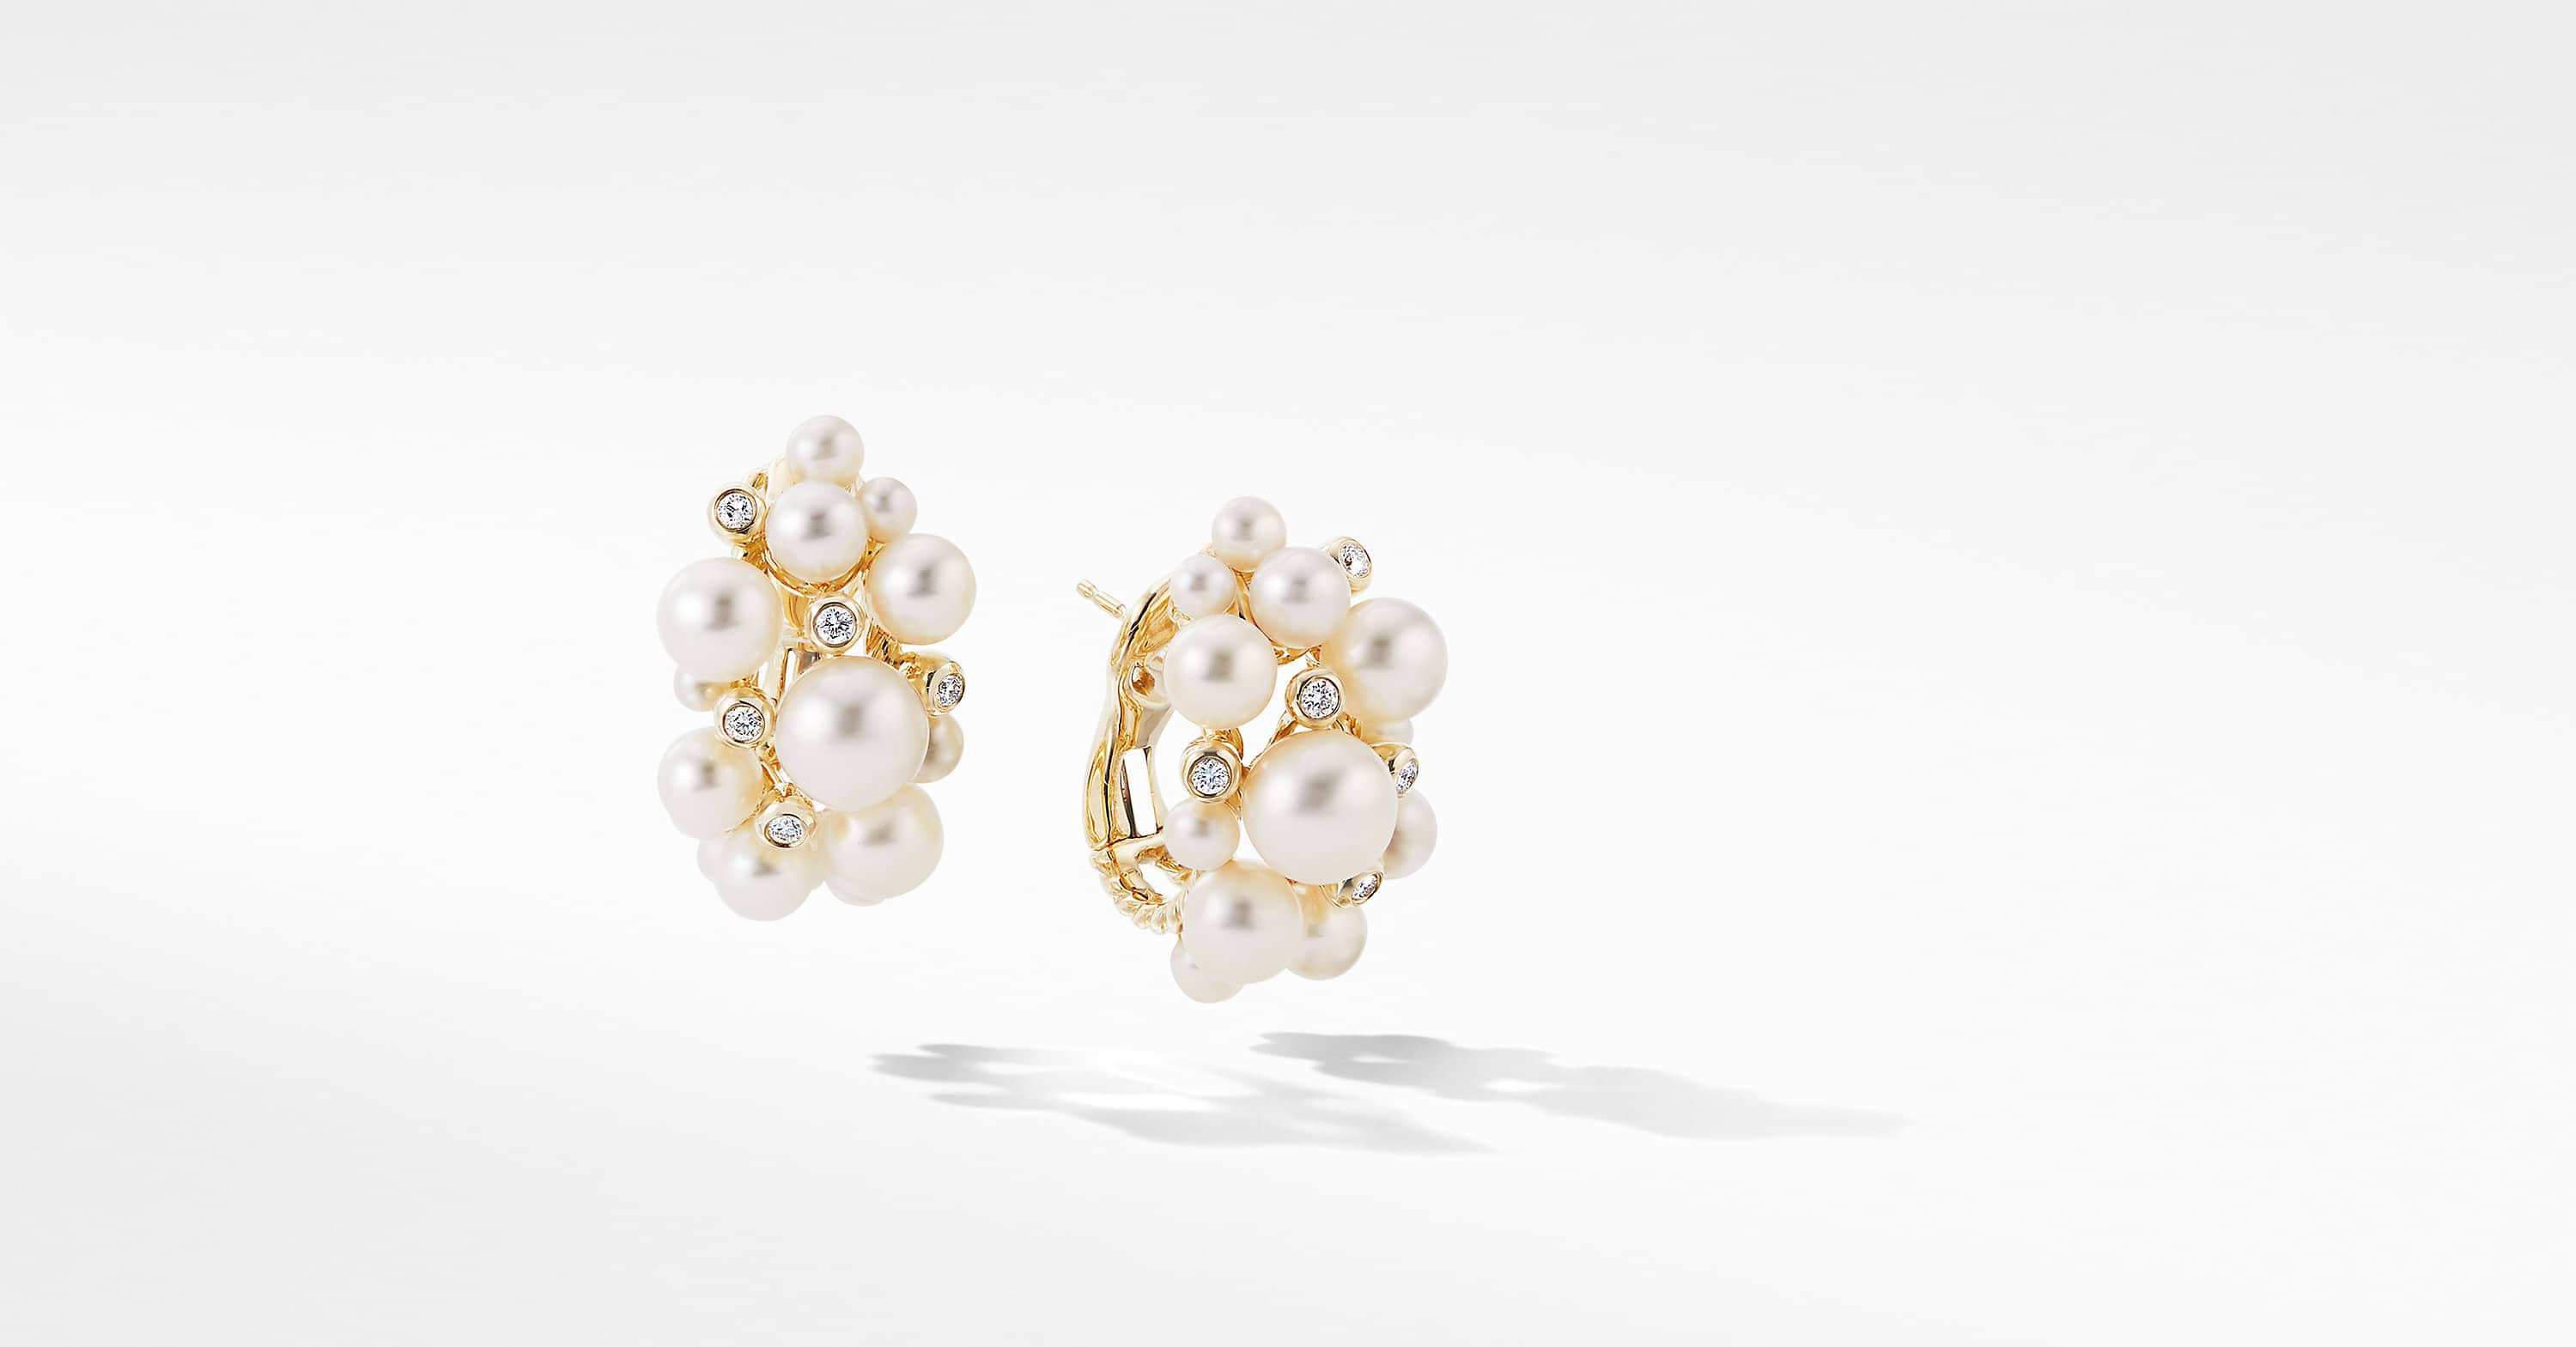 Large Pearl Cluster Hoop Earrings in 18K Yellow Gold with Diamonds